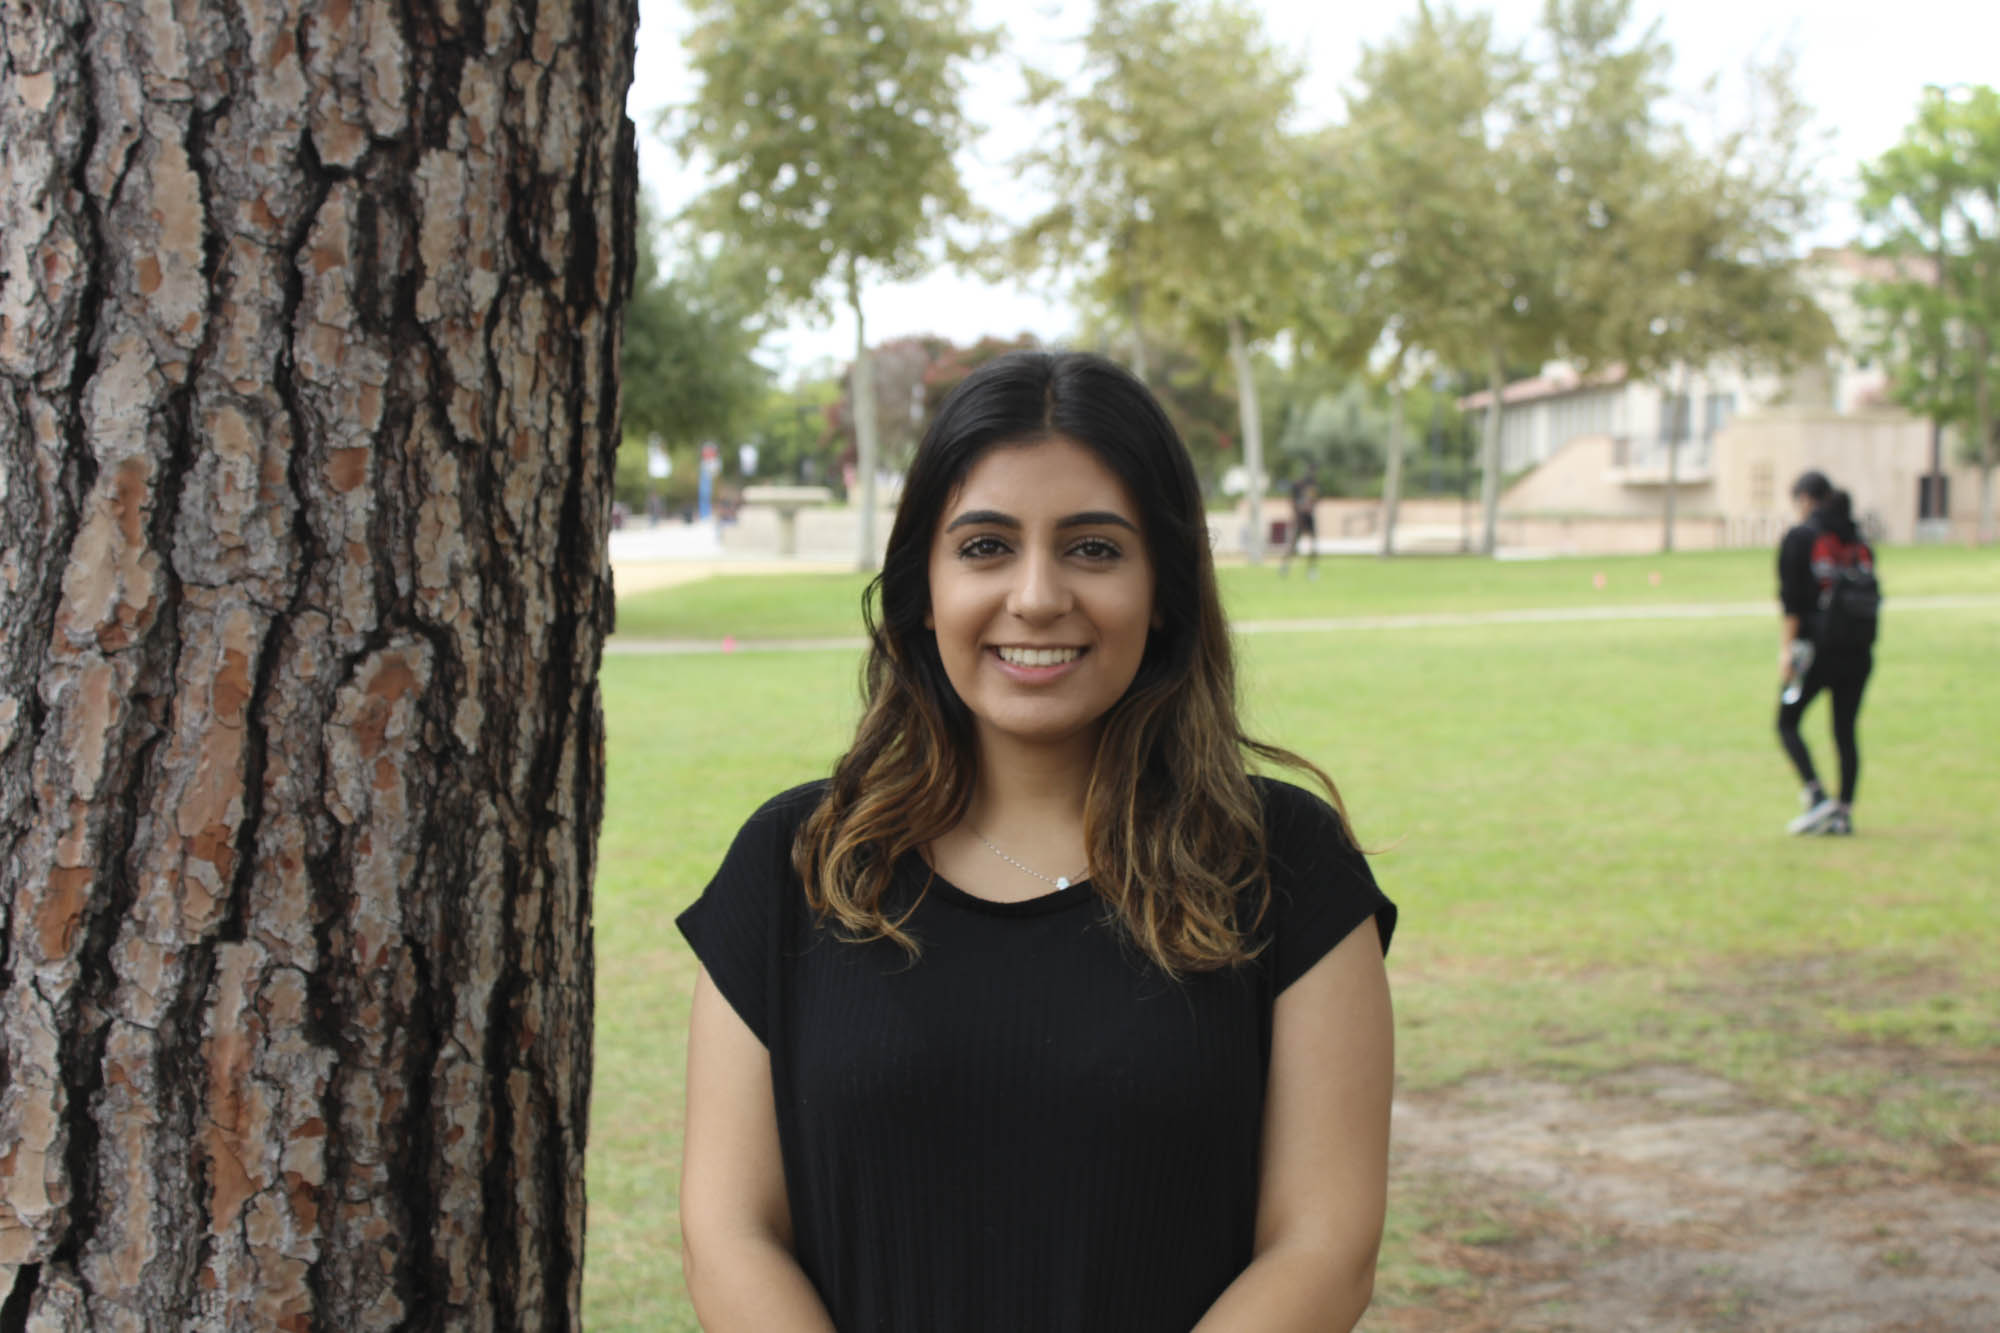 Student brings understanding and knowledge to Pierce